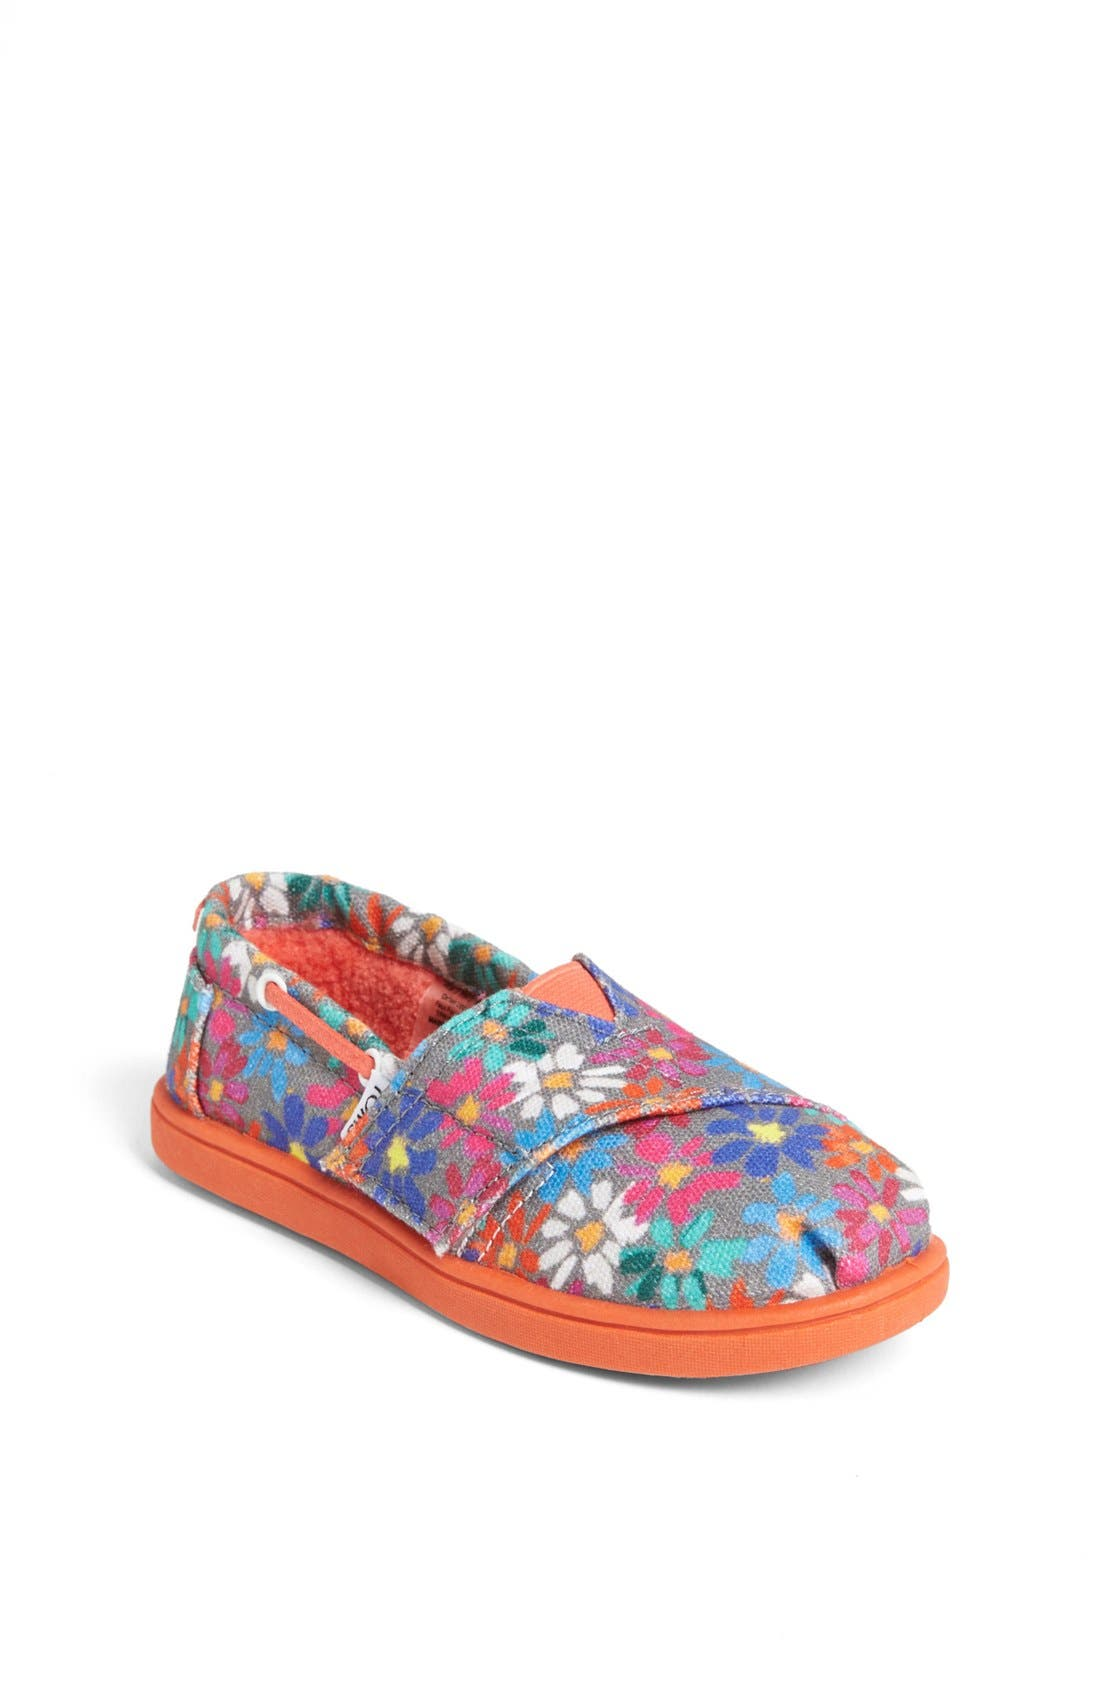 Alternate Image 1 Selected - TOMS 'Bimini Alpargata - Tiny' Slip-On (Baby, Walker & Toddler)